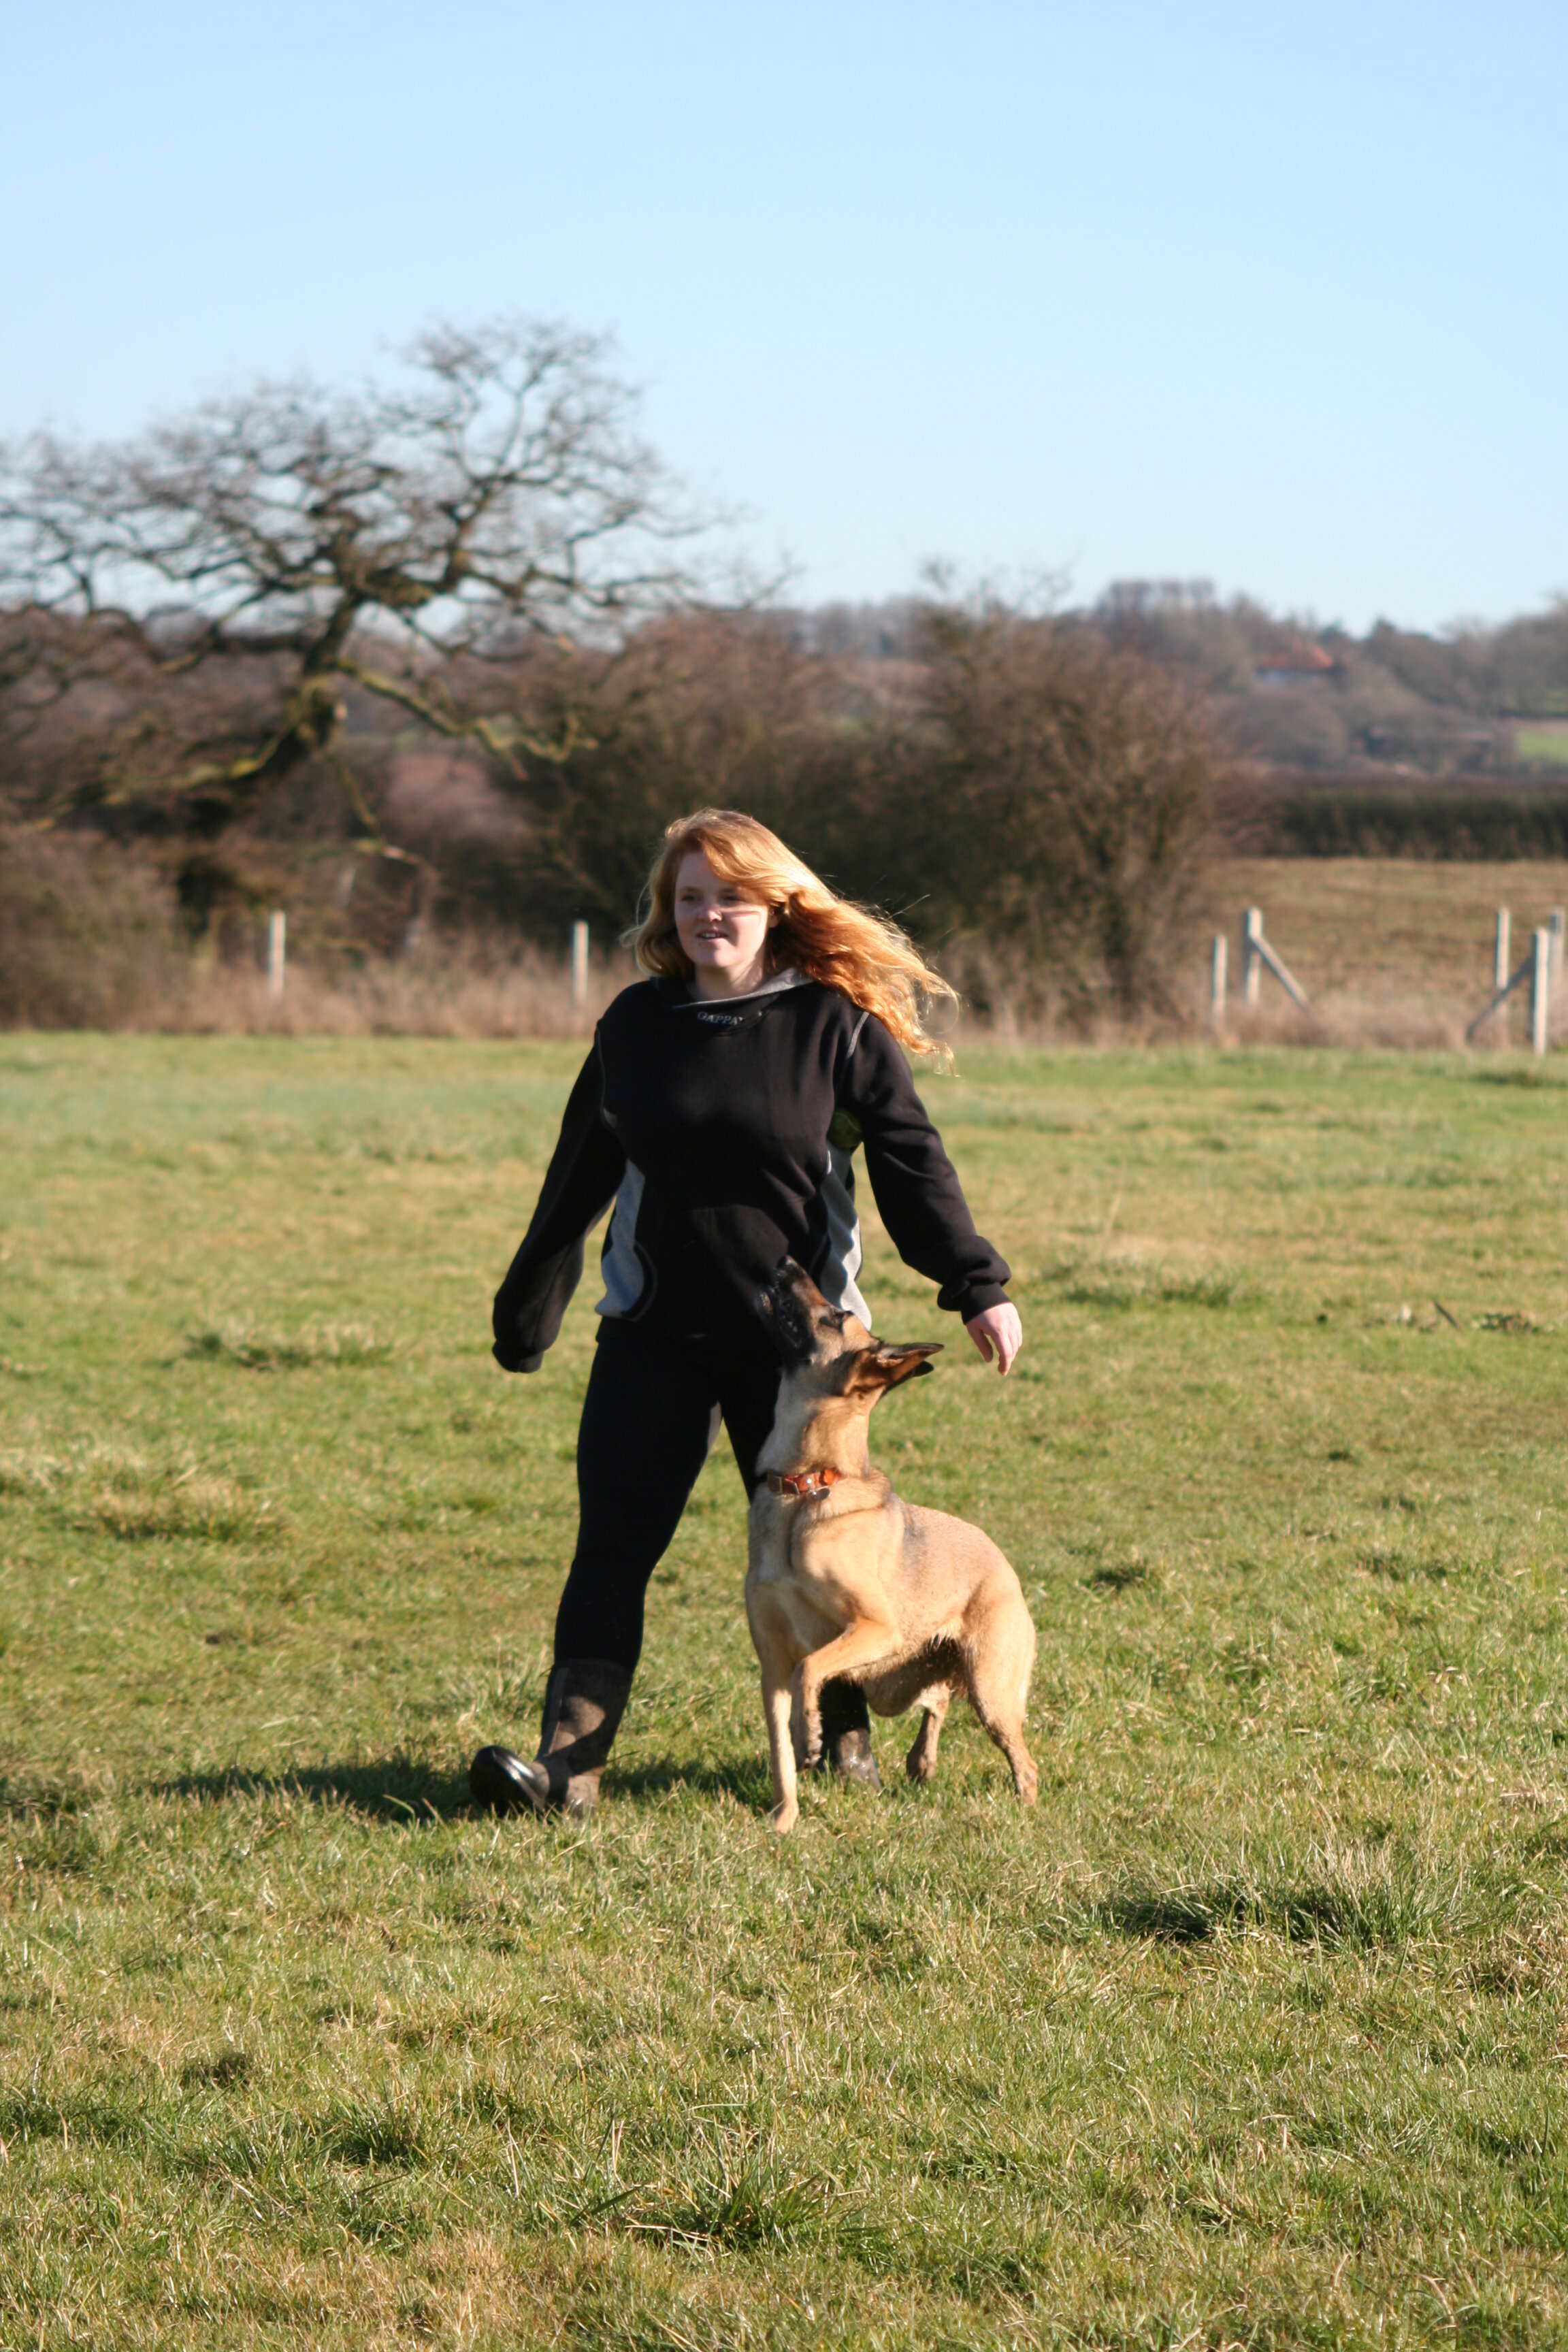 About Amey - I'd always wanted to become a qualified dog trainer & behaviourist and spent many years researching and reading as much about the profession that I could find! What once was a bucket-list dream became a reality when I became a fully accredited and qualified dog trainer under the Institute of Modern Dog Trainers and later joined The Pet Professional Guild.Before making this move, I had been working in an office and struggled daily to find someone reliable and trustworthy to walk my own dogs, let alone look after them for longer periods of time if I needed. After all, putting a member of your family in someone else's hands and trusting them to look after them as you would yourself is difficult to find.After being let down again and again, I really focused on turning my dream into a reality by getting my qualifications and starting my own business so that I could give people a service I had missed out on.I hope that with my experience, reliability, passion and knowledge I can continue to make a difference to the dogs I meet and give people the tools they need to manage their pets and make their dog-owning experience more enjoyable and less stressful.